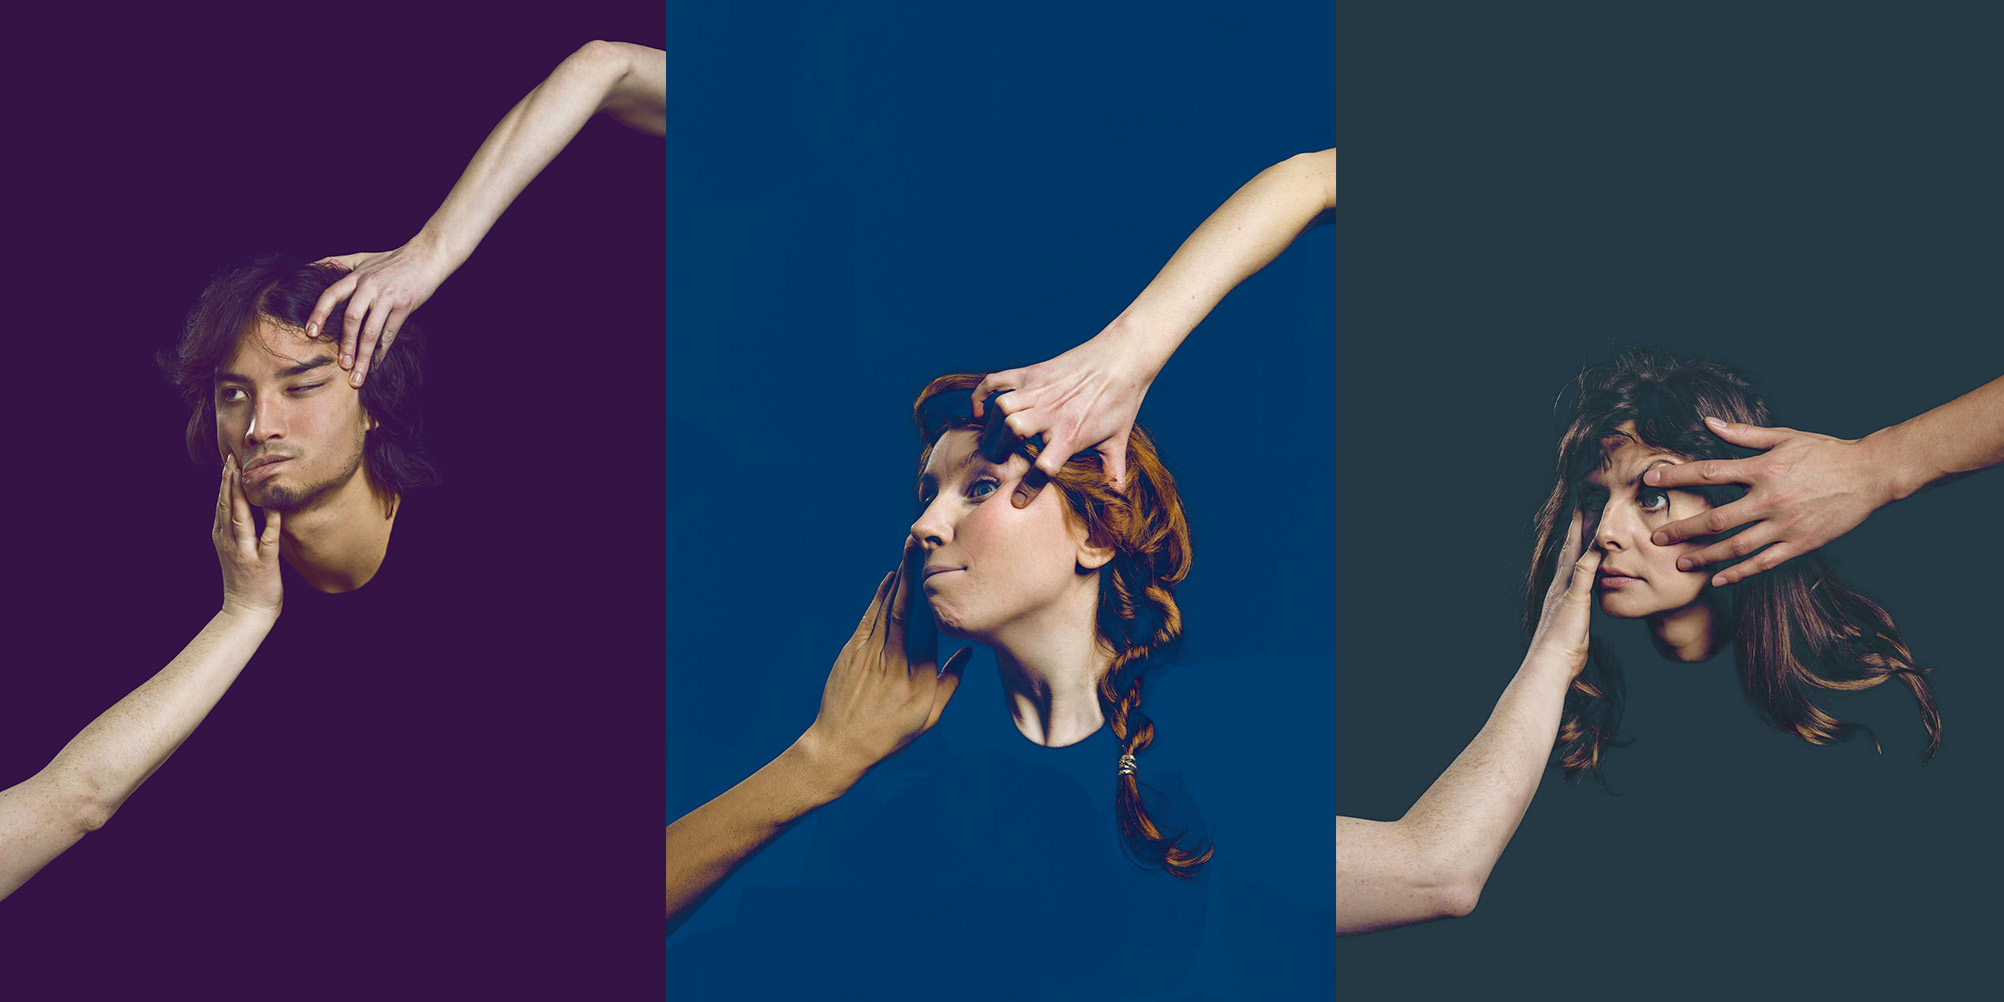 Poster images for the performance Trio. Photo: Lars Dyrendom